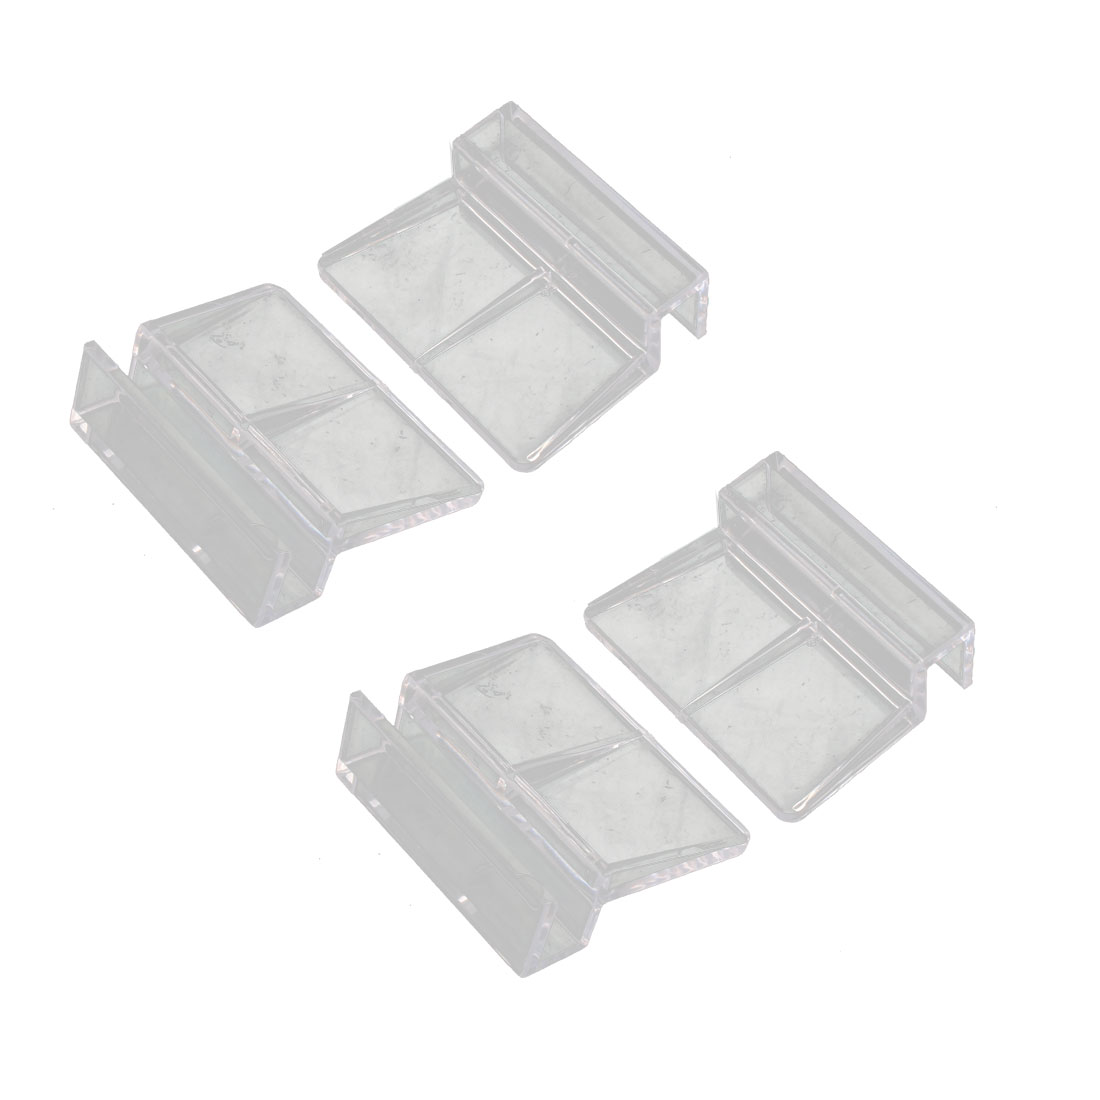 Plastic Shelf Clip Clamp Holder Support Bracket Clear 4pcs for 8mm Thick Glass